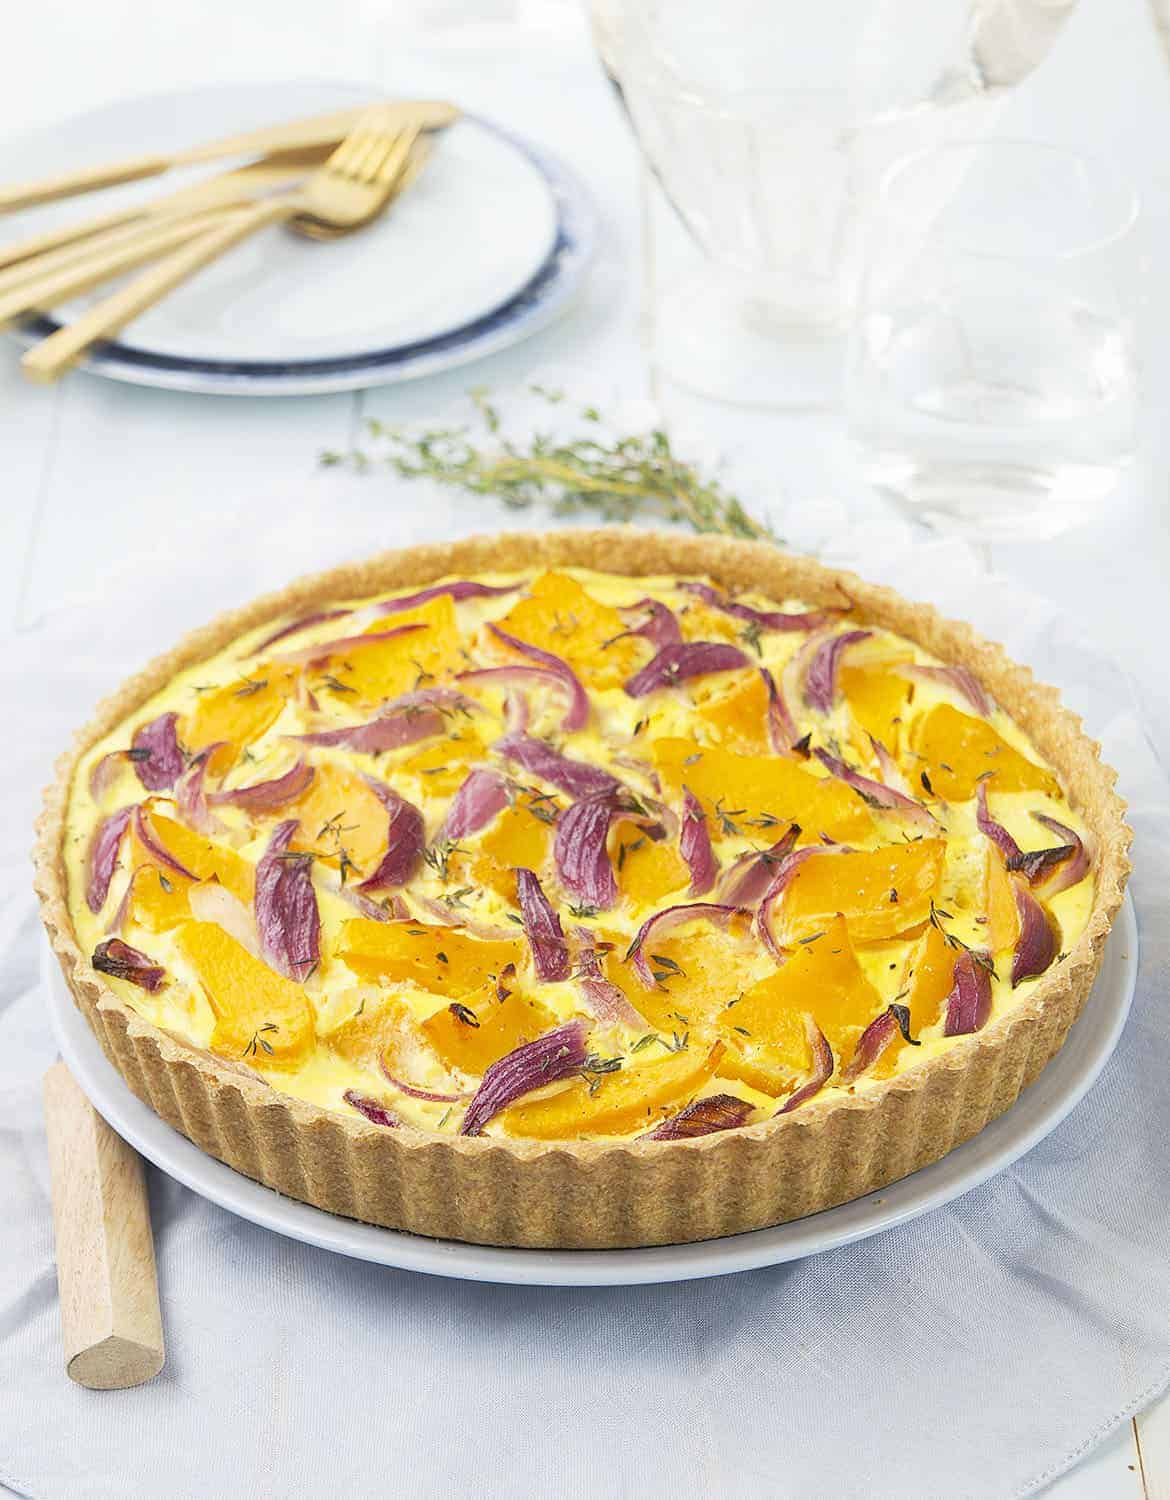 Pumpkin quiche with slices of red onion on a light blue background.